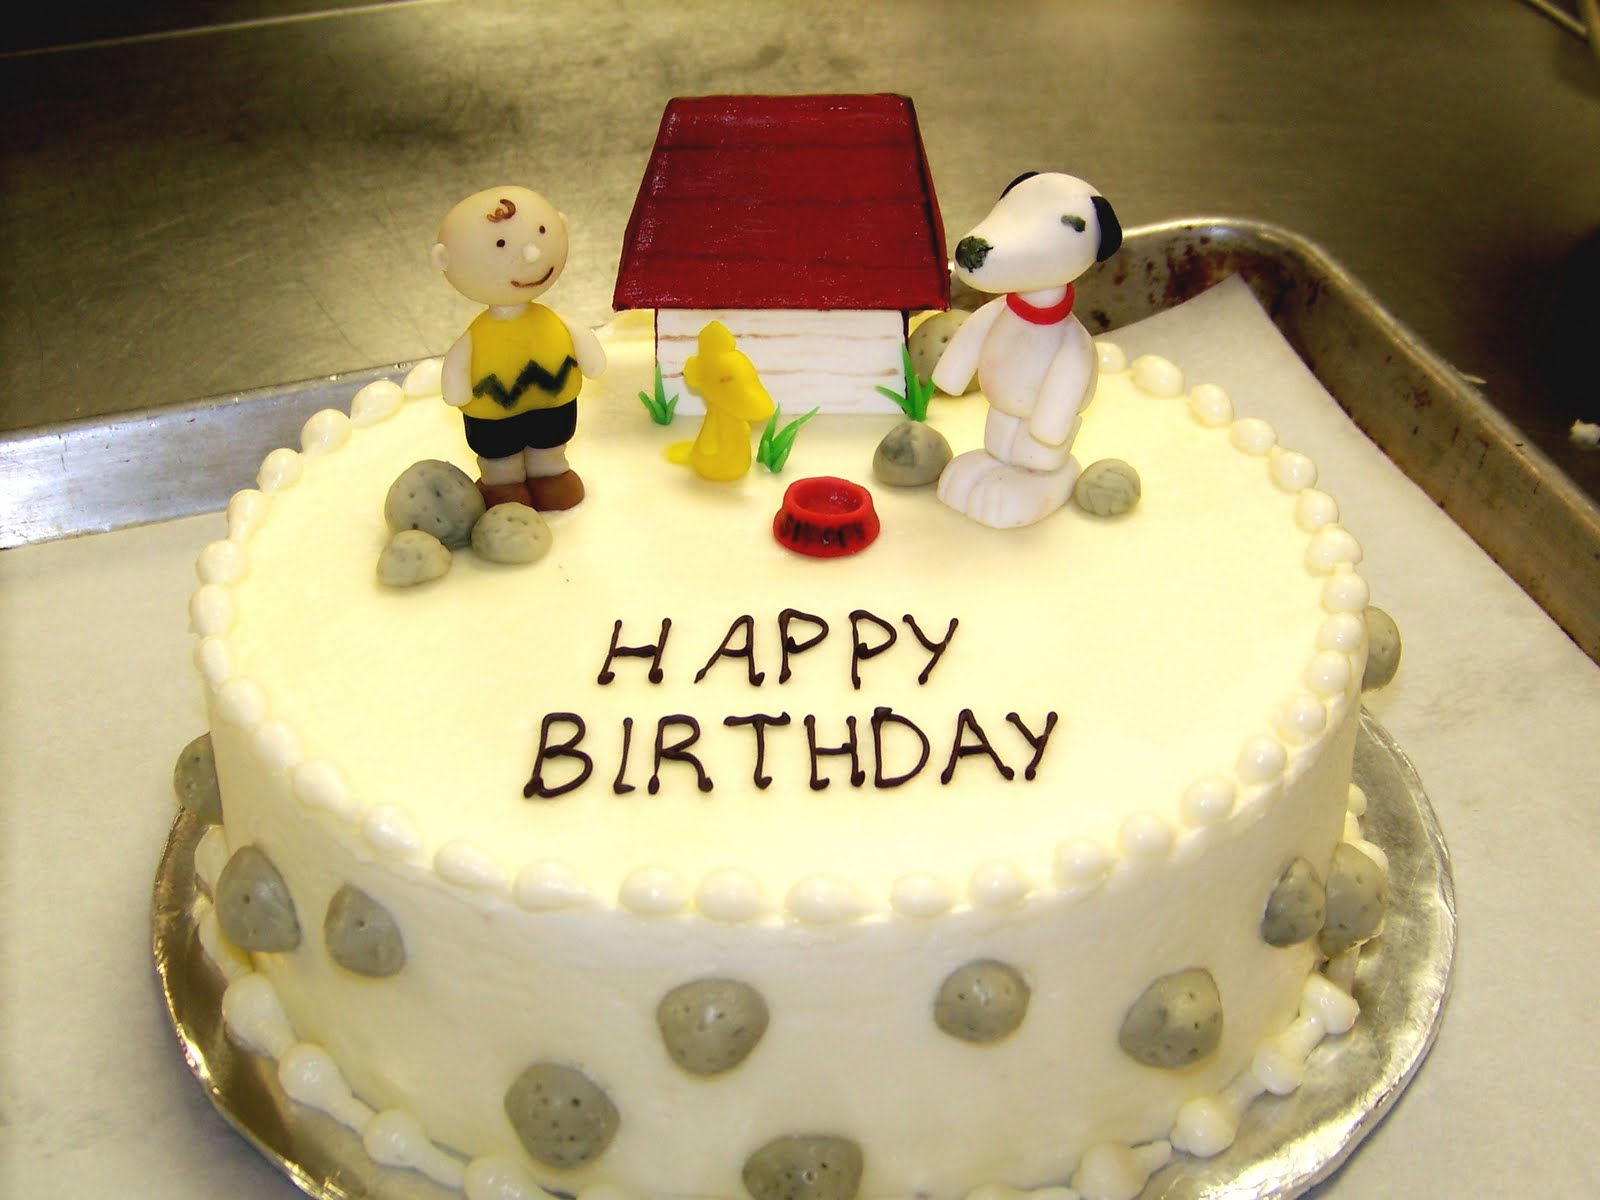 Special Anniversary Cake Images : Images Special Birthday Cakes 2015 - House Style Pictures